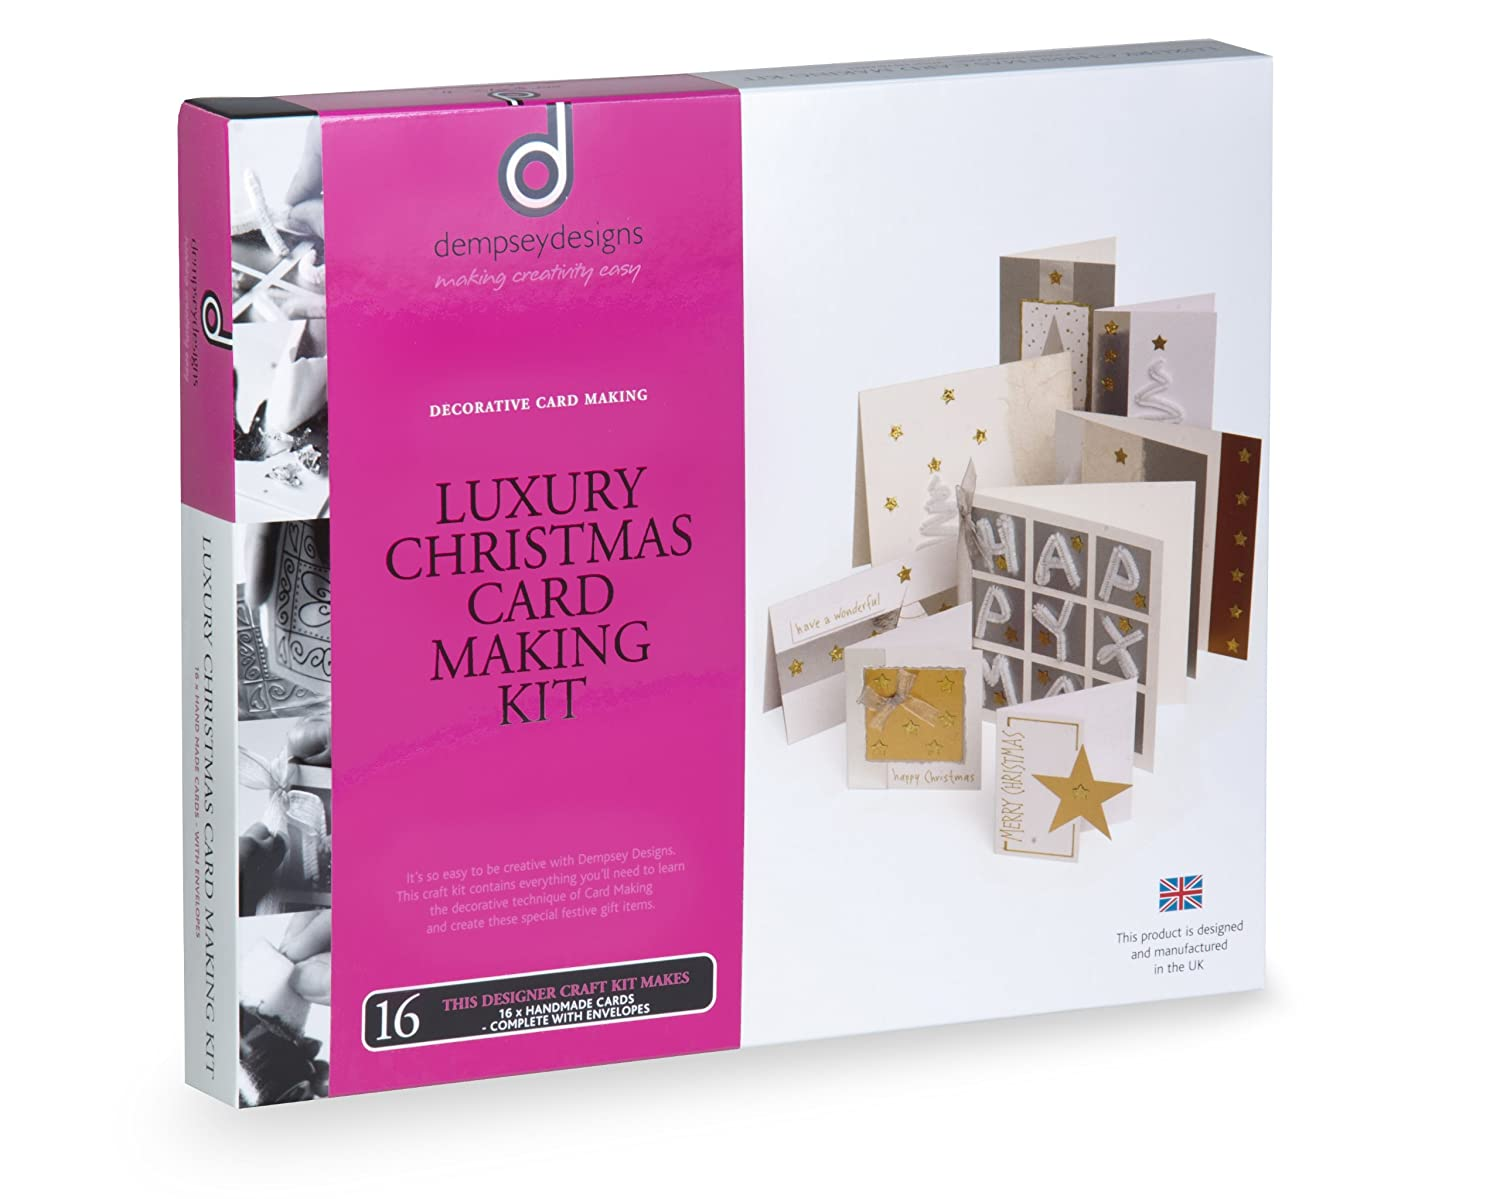 Dempsey Designs Luxury Christmas Card Making Kit